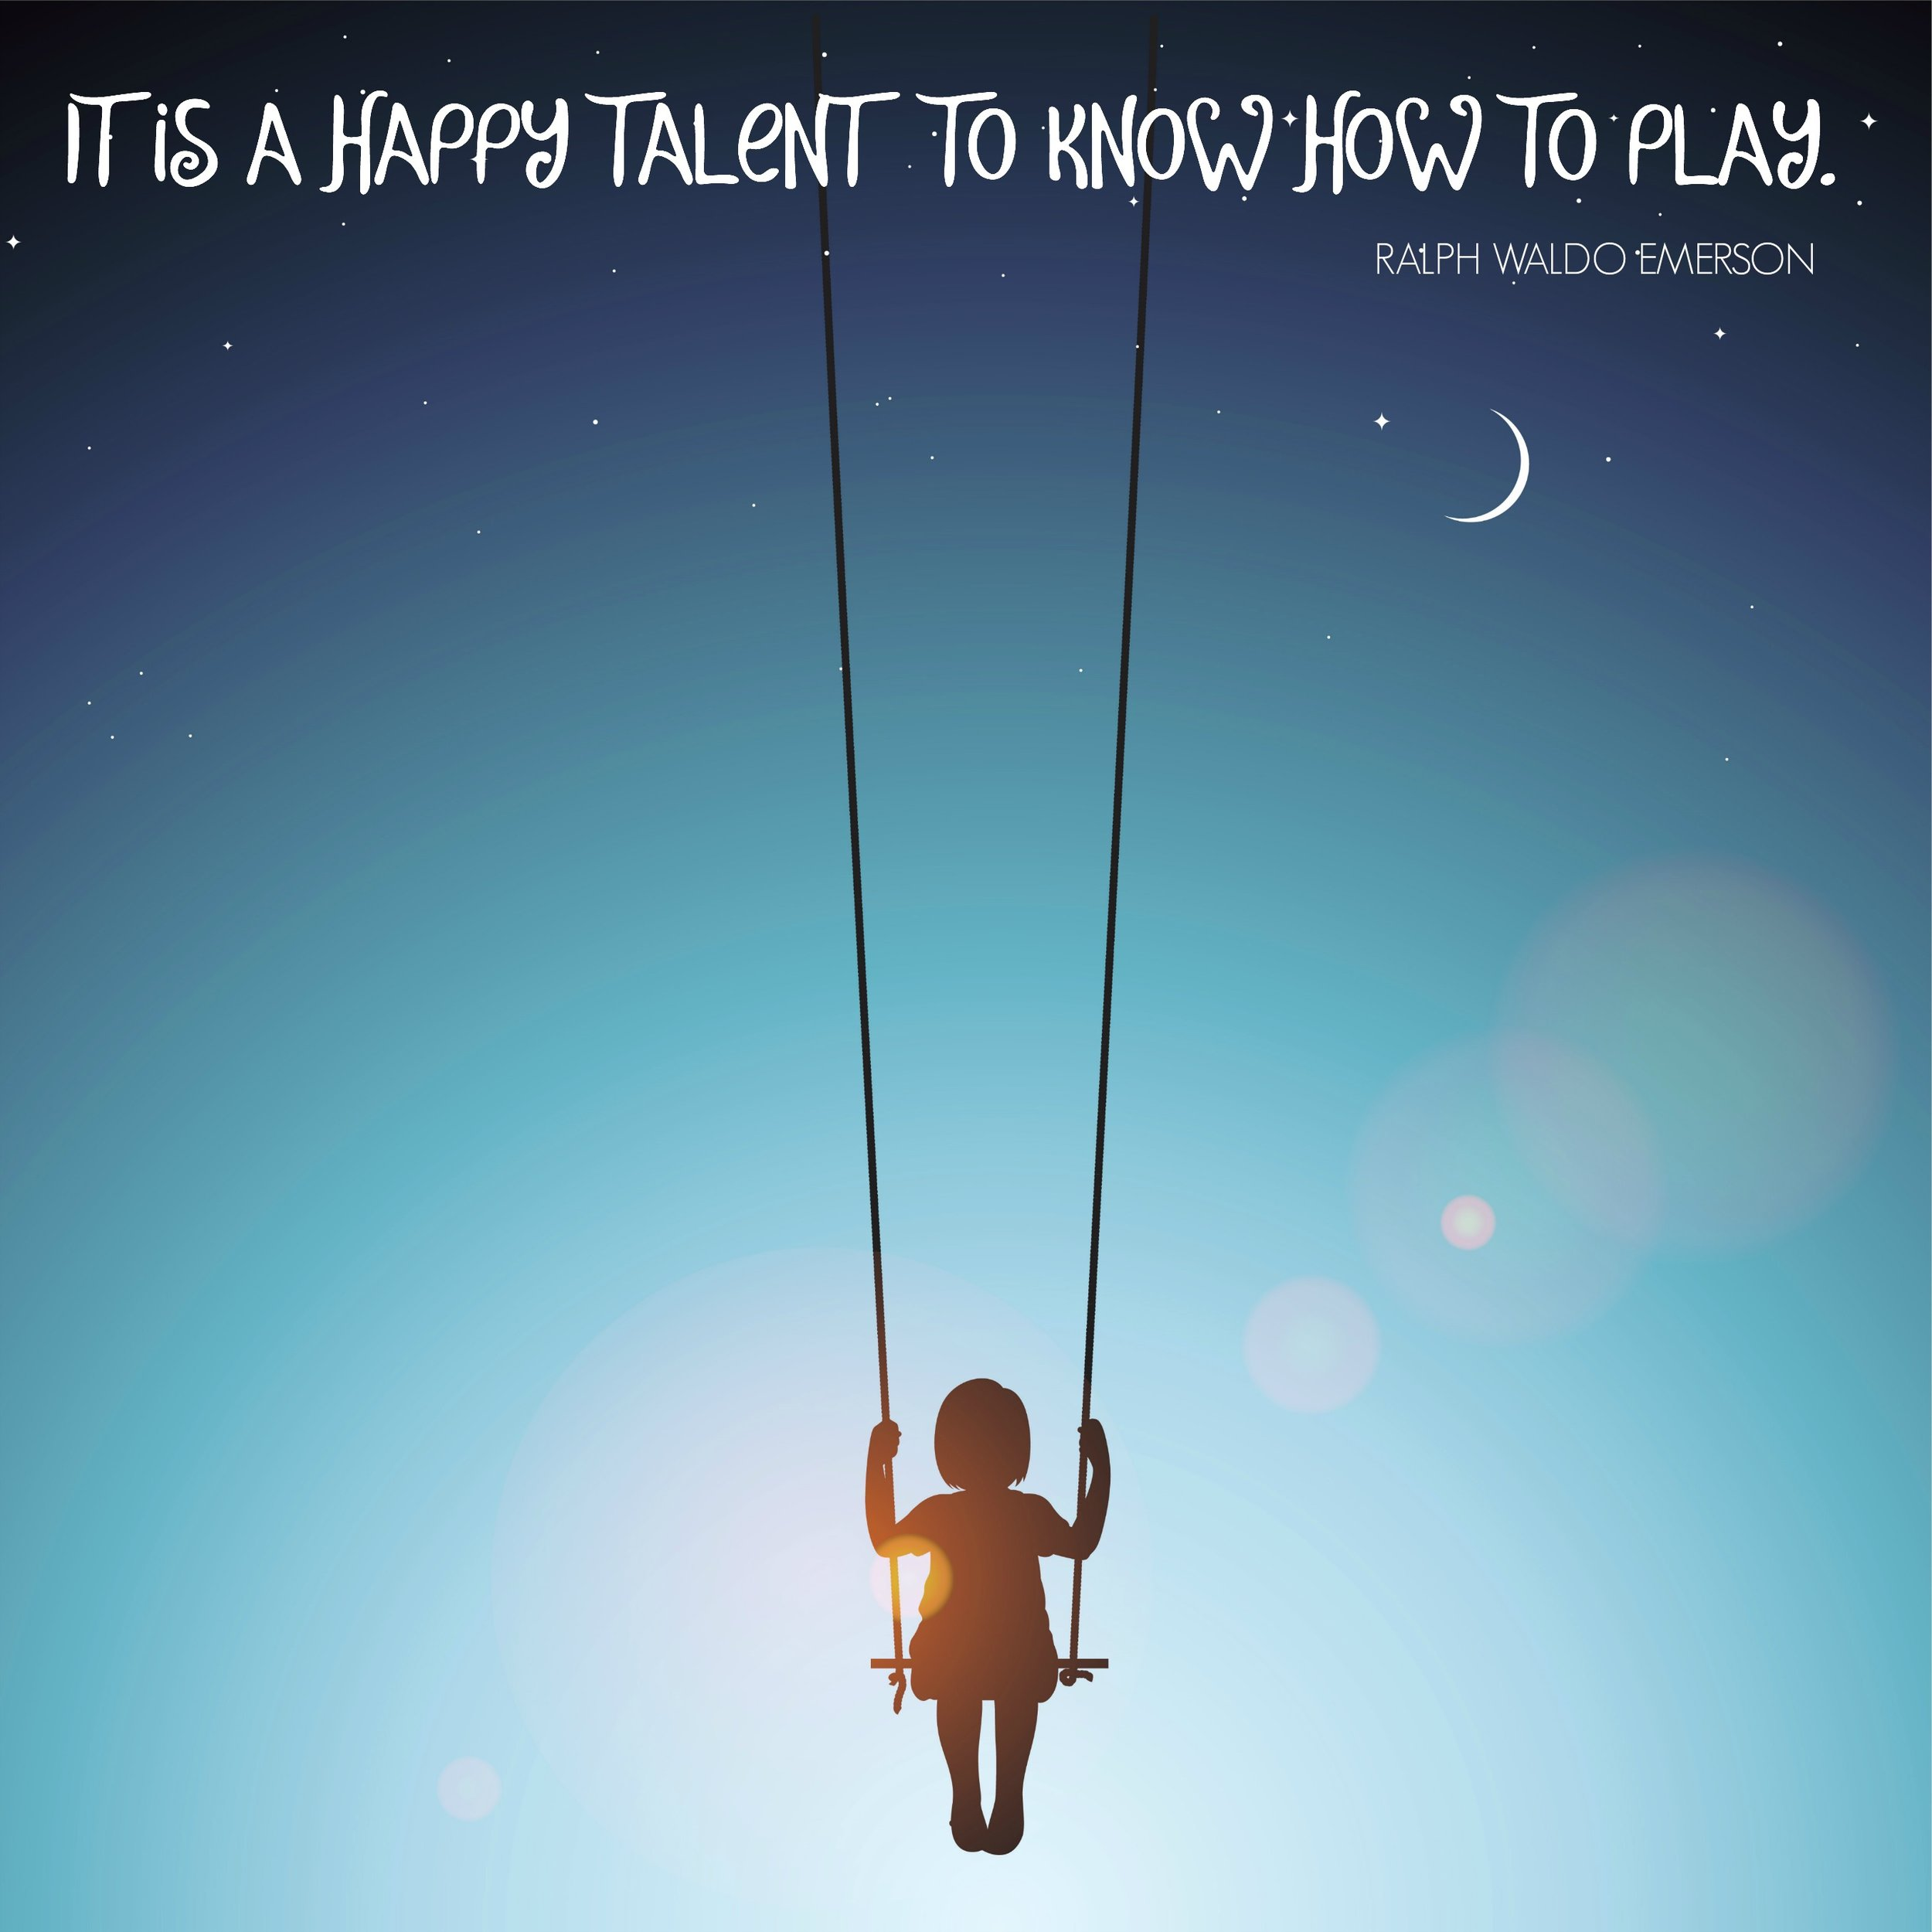 It is a happy talent to know how to play. Ralph Waldo Emerson. Circle of Daydreams.